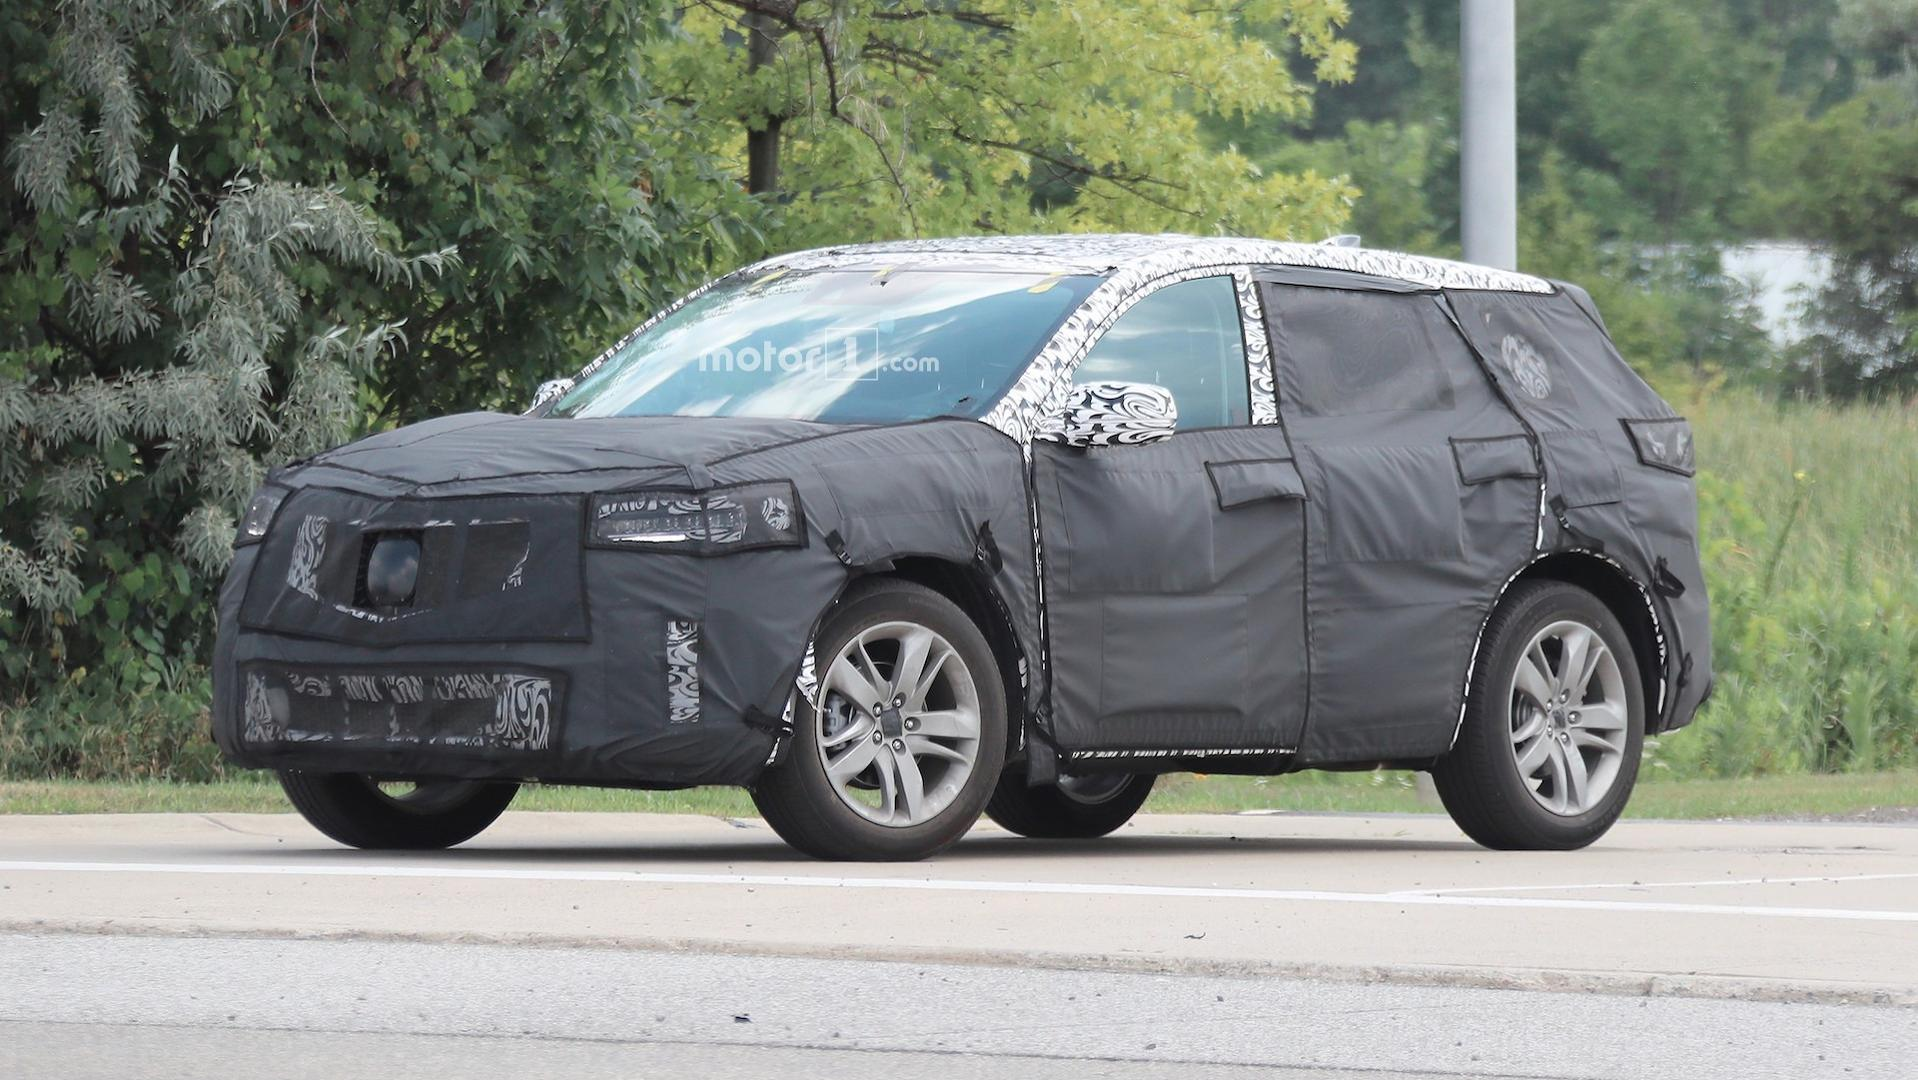 2018 Acura RDX Spy Shots And Latest News >> 2018 Acura Rdx Spied With Updated Design